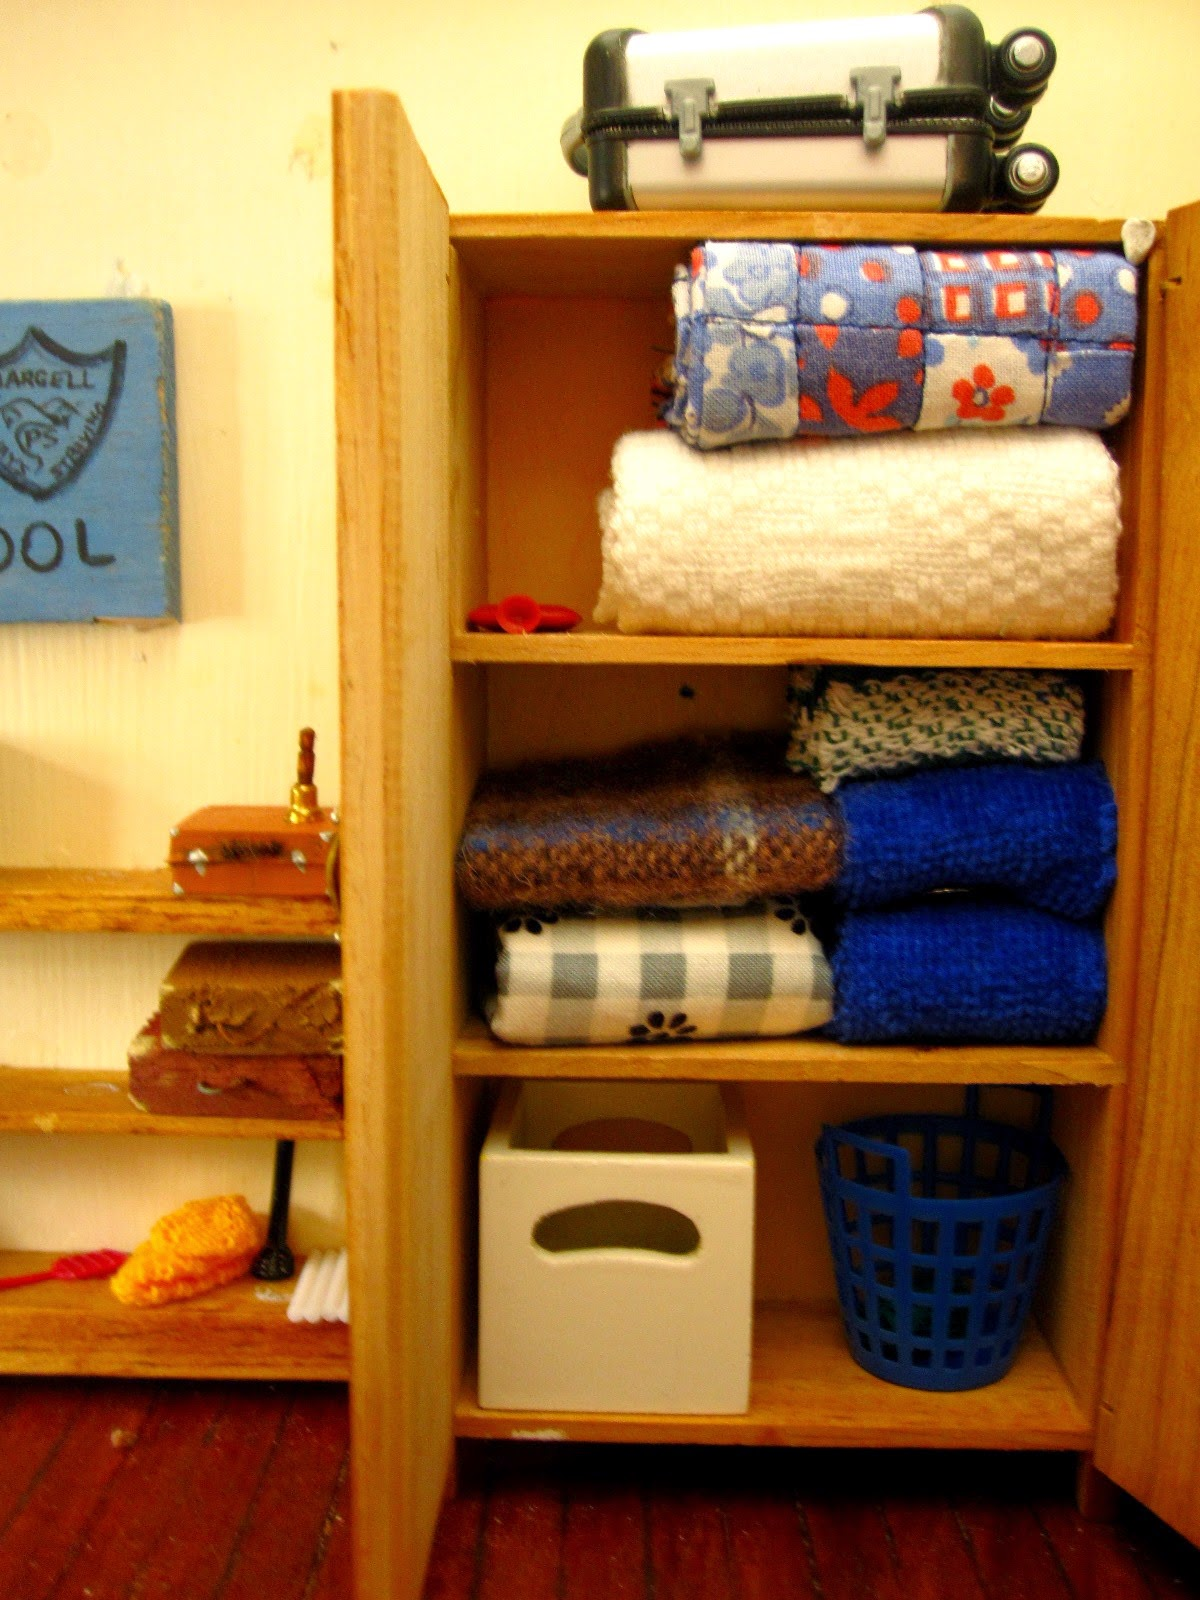 Modern dolls' house miniature cupboard containing spare linen and storage boxes.